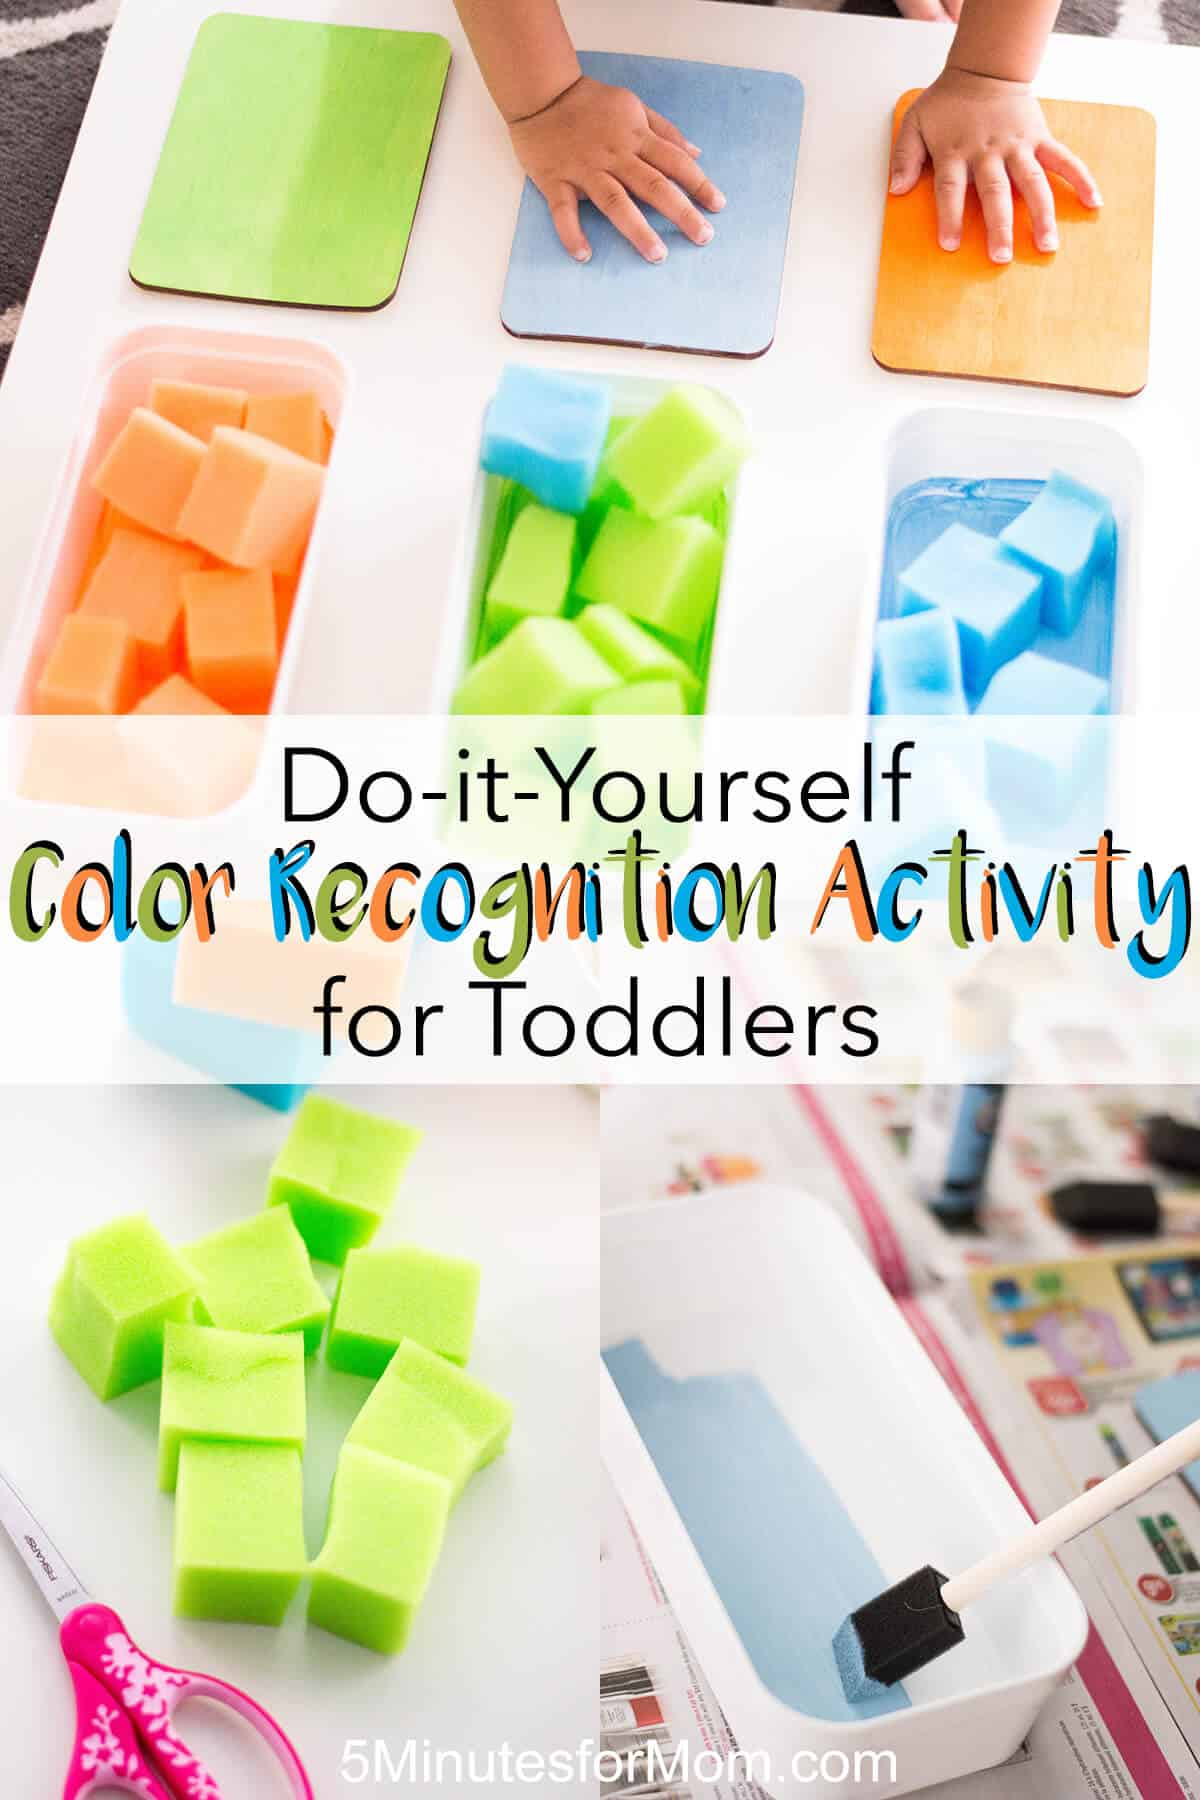 DIY color recognition activity for toddlers - A toddler activity to encourage color recognition and sorting